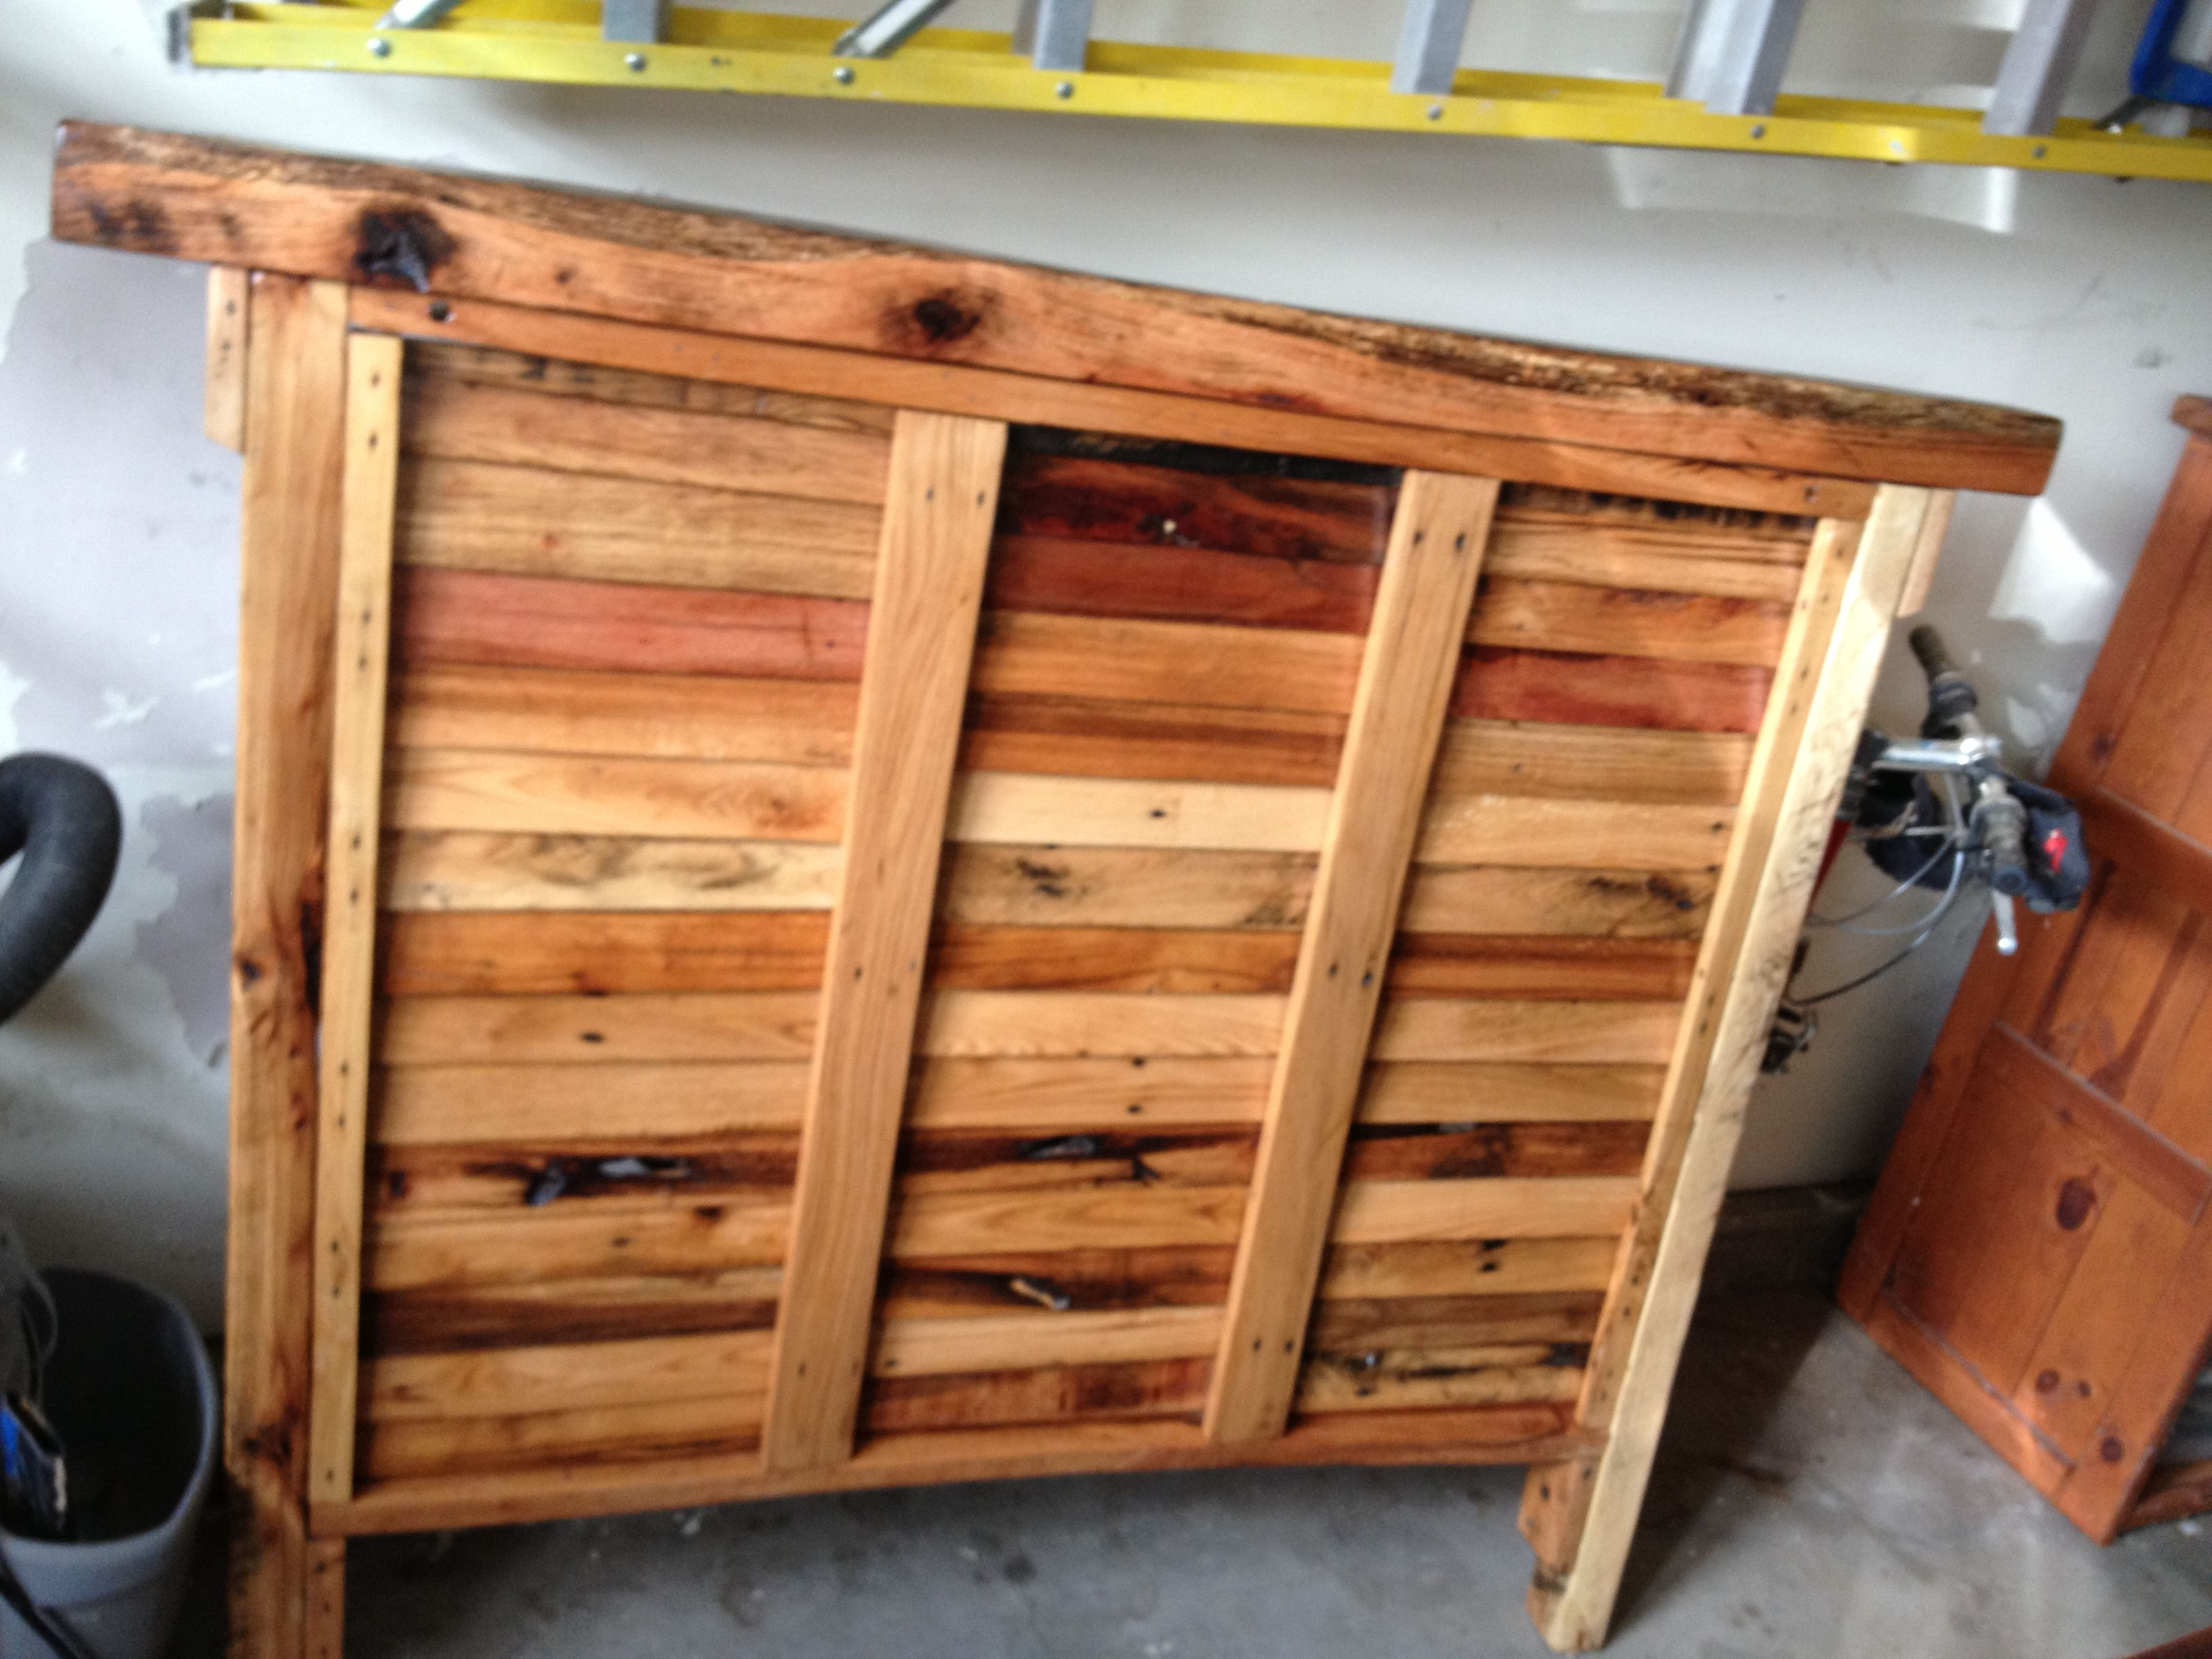 Reclaimed industrial shipping pallet wood repurposed into ...